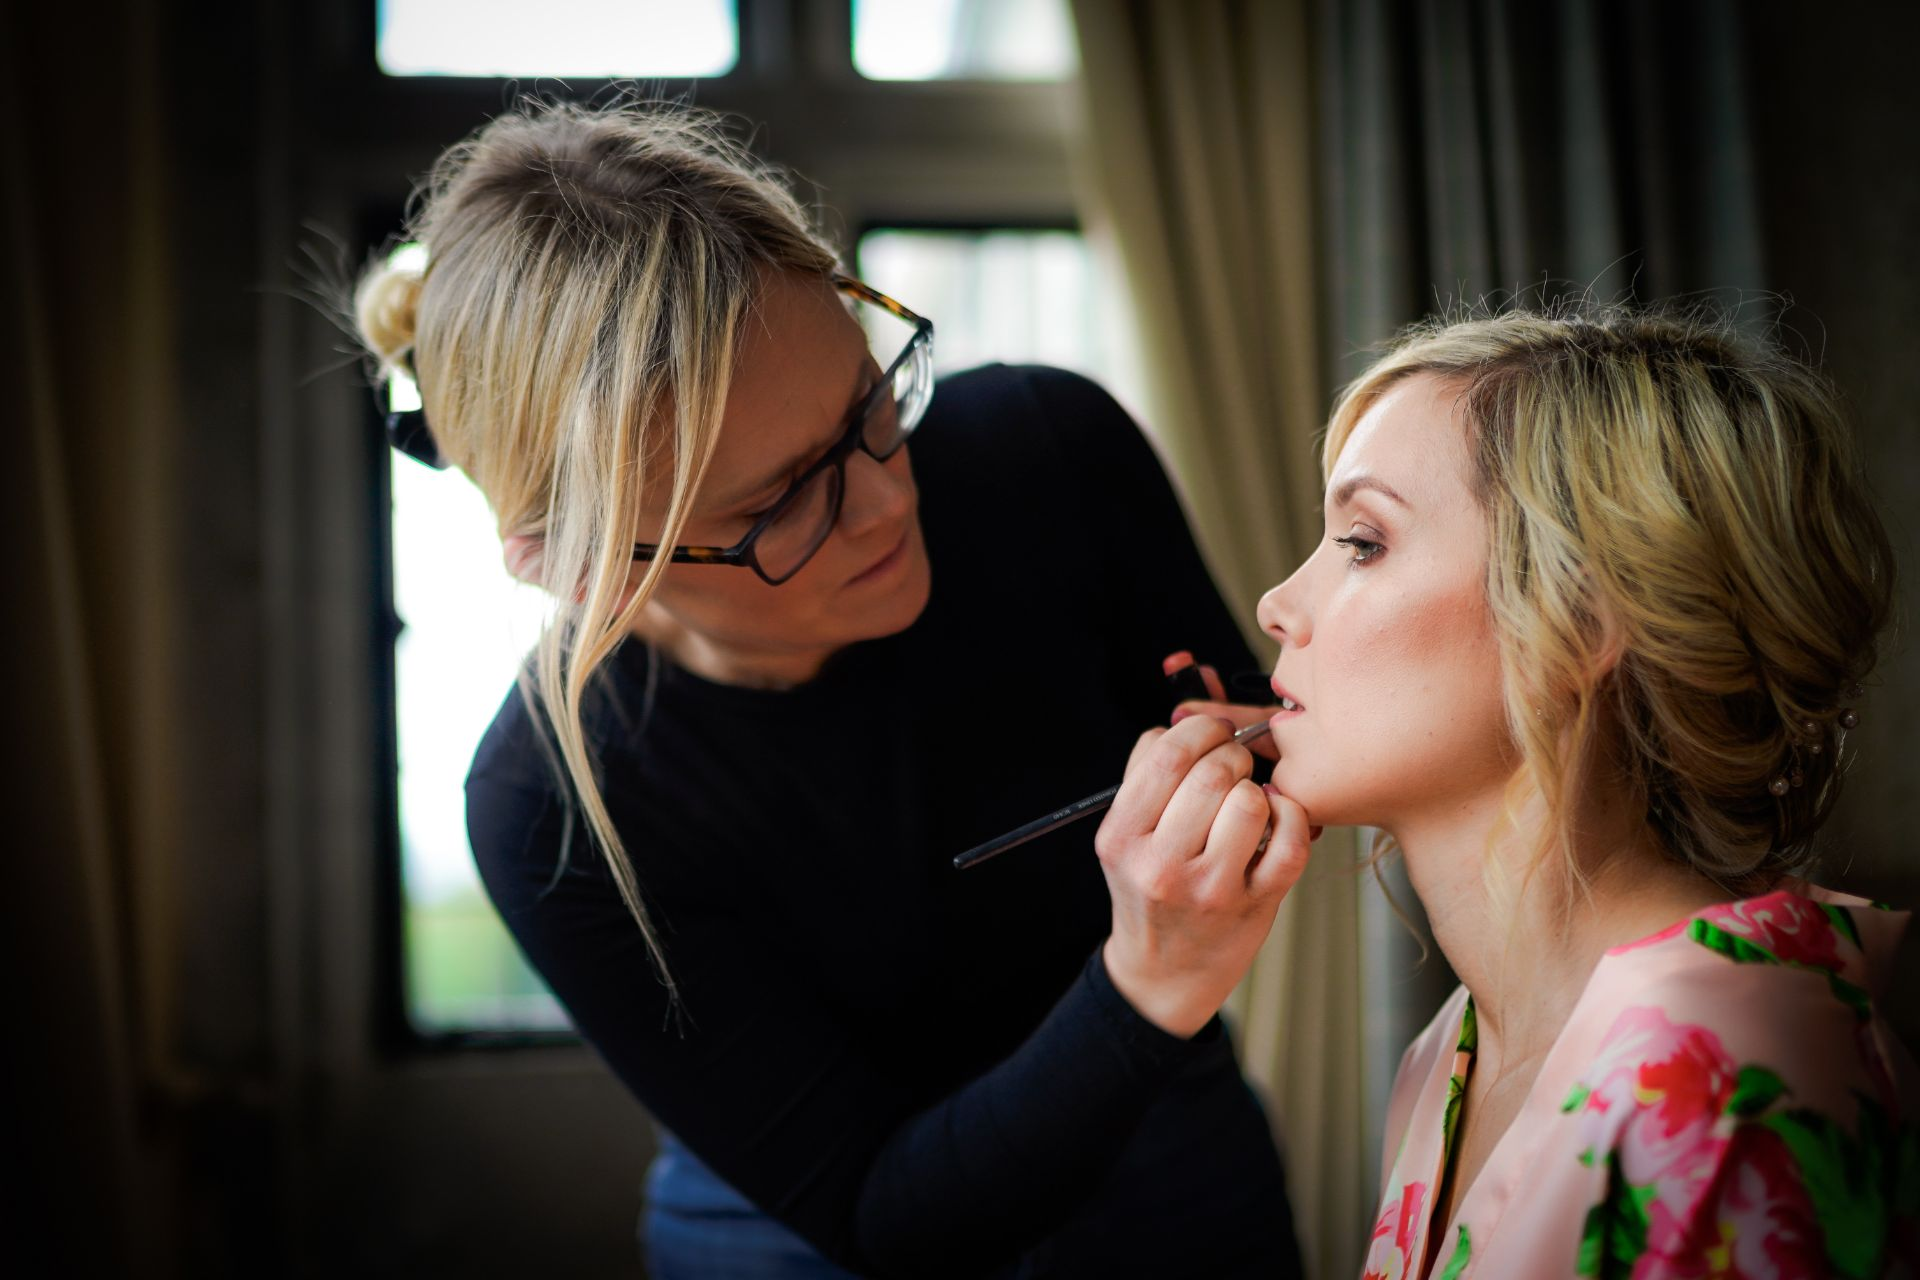 Keswick, makeup, wedding, mua, makeup artist Cumbria, Keswick wedding, Keswick bride, Cumbria bride